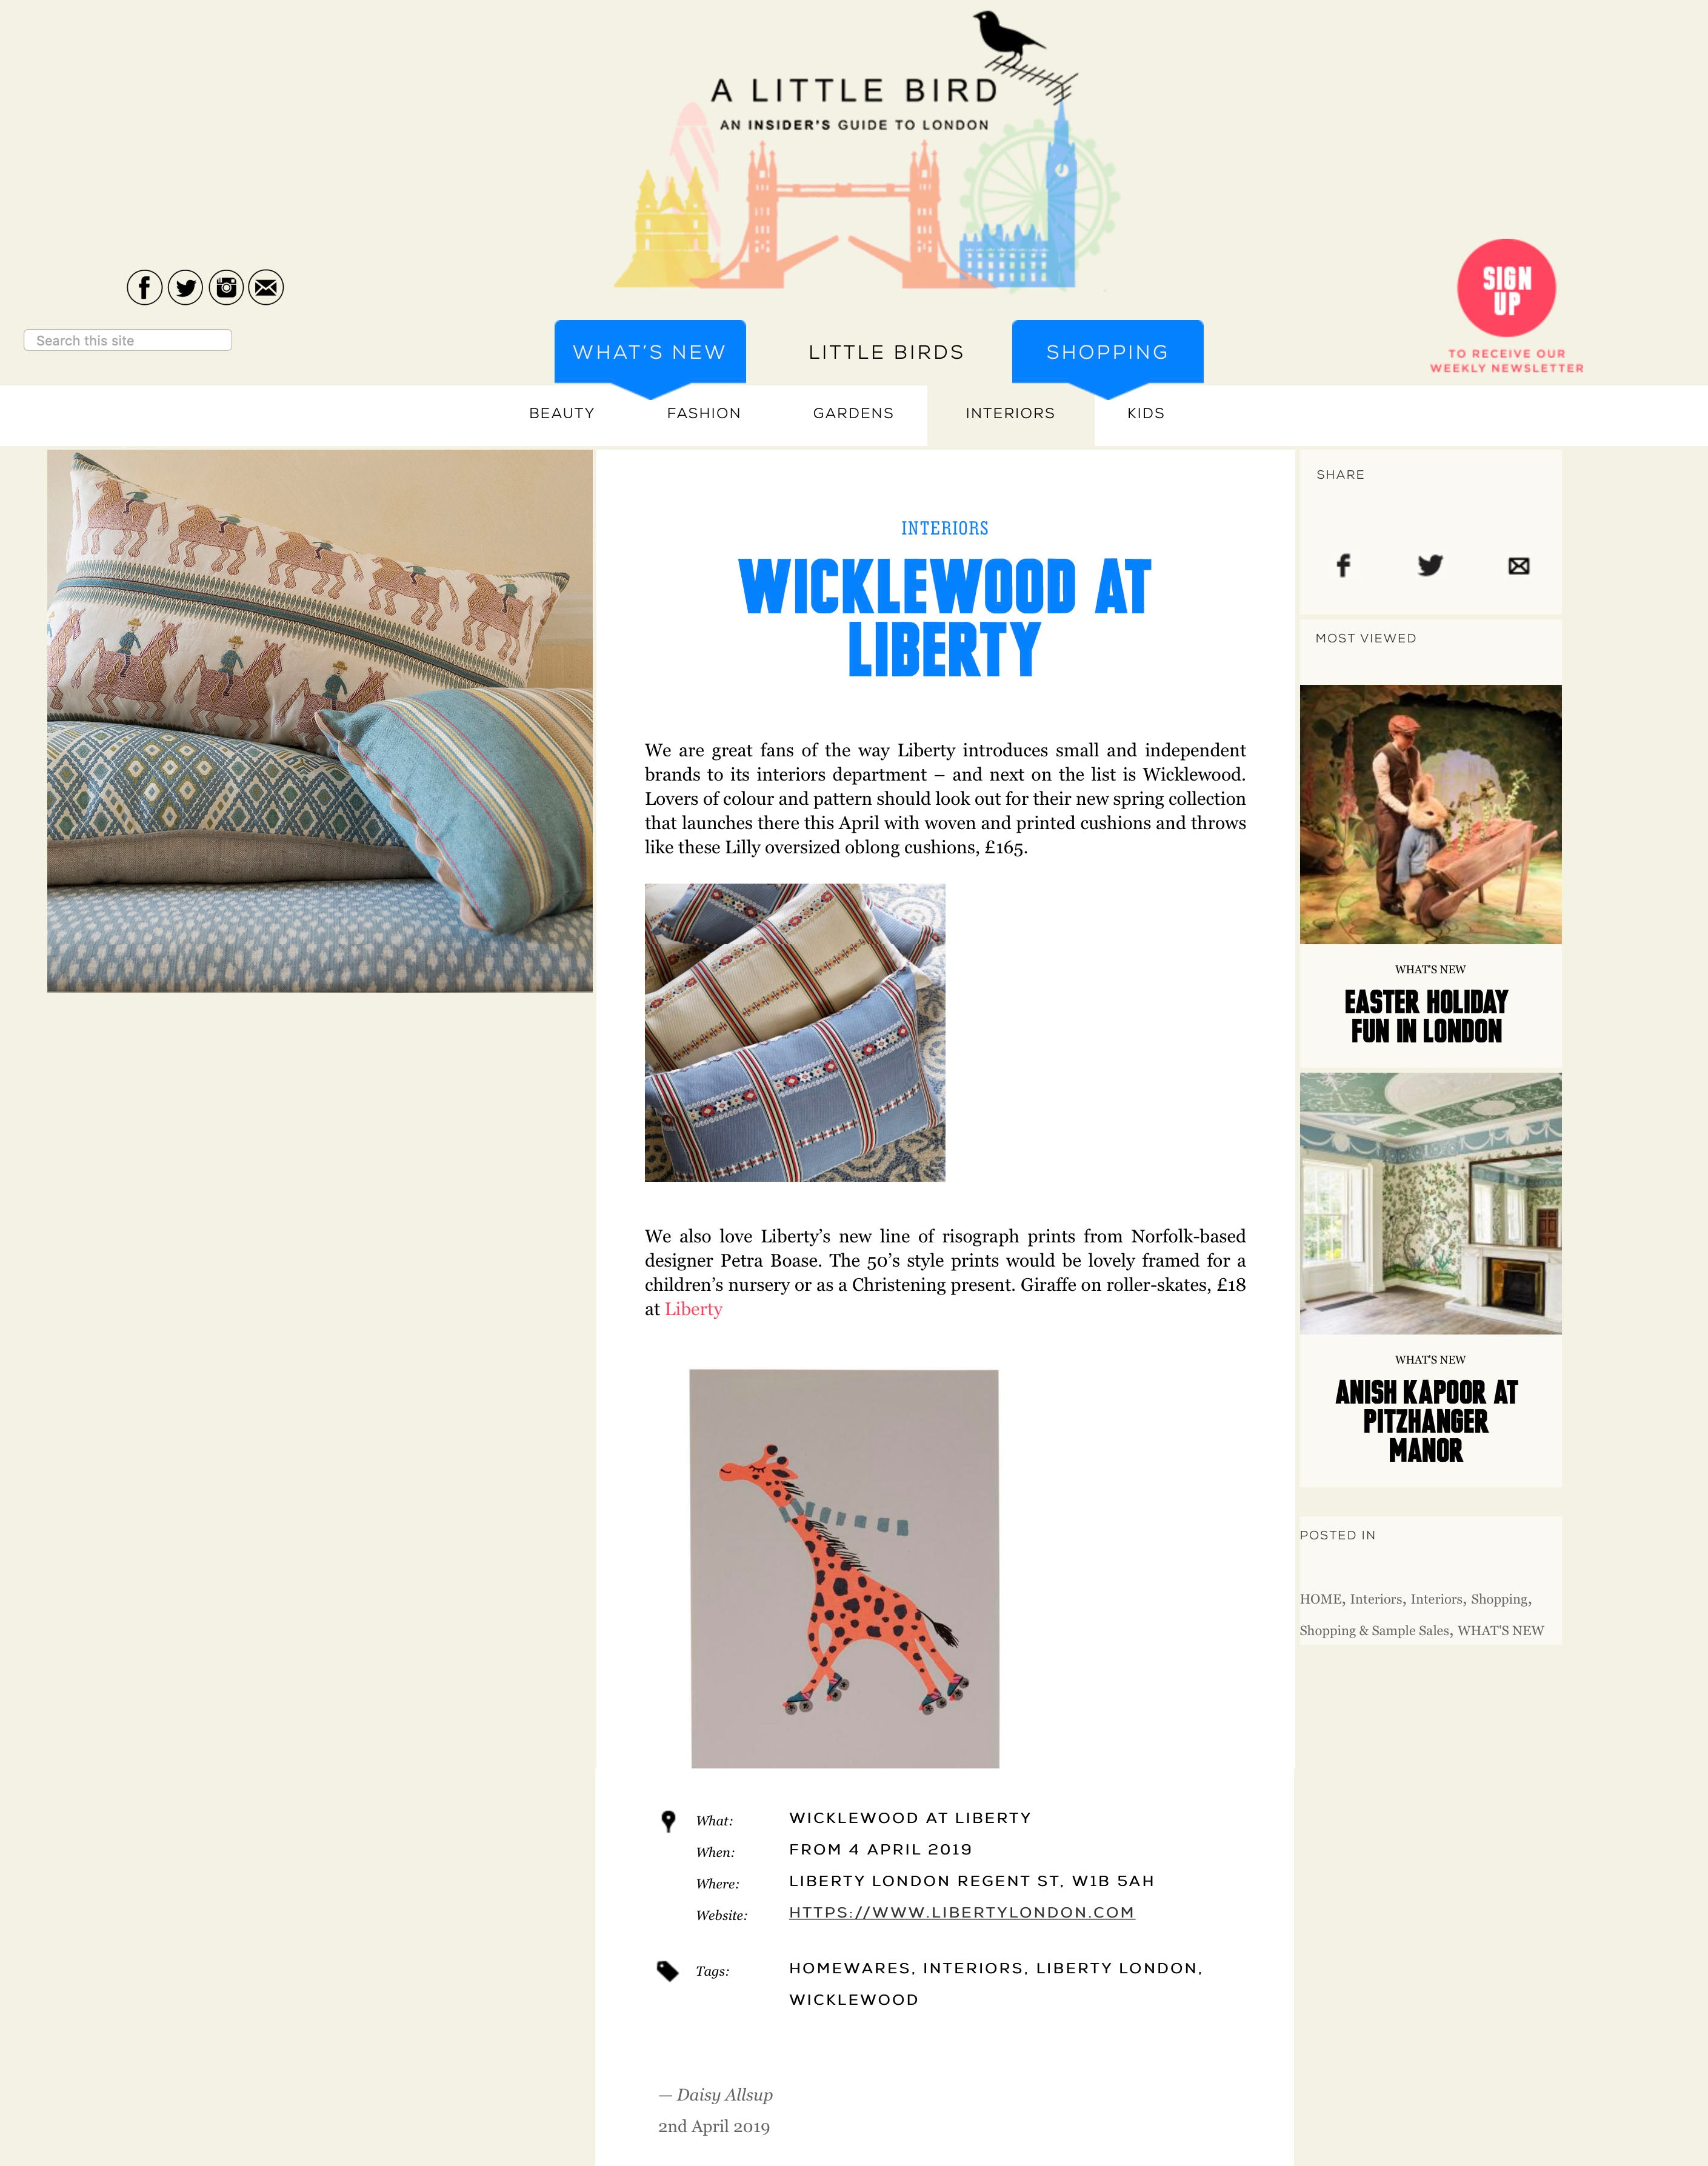 Wicklewood launches at Liberty featured on the A Little Bird London blog in April 2019